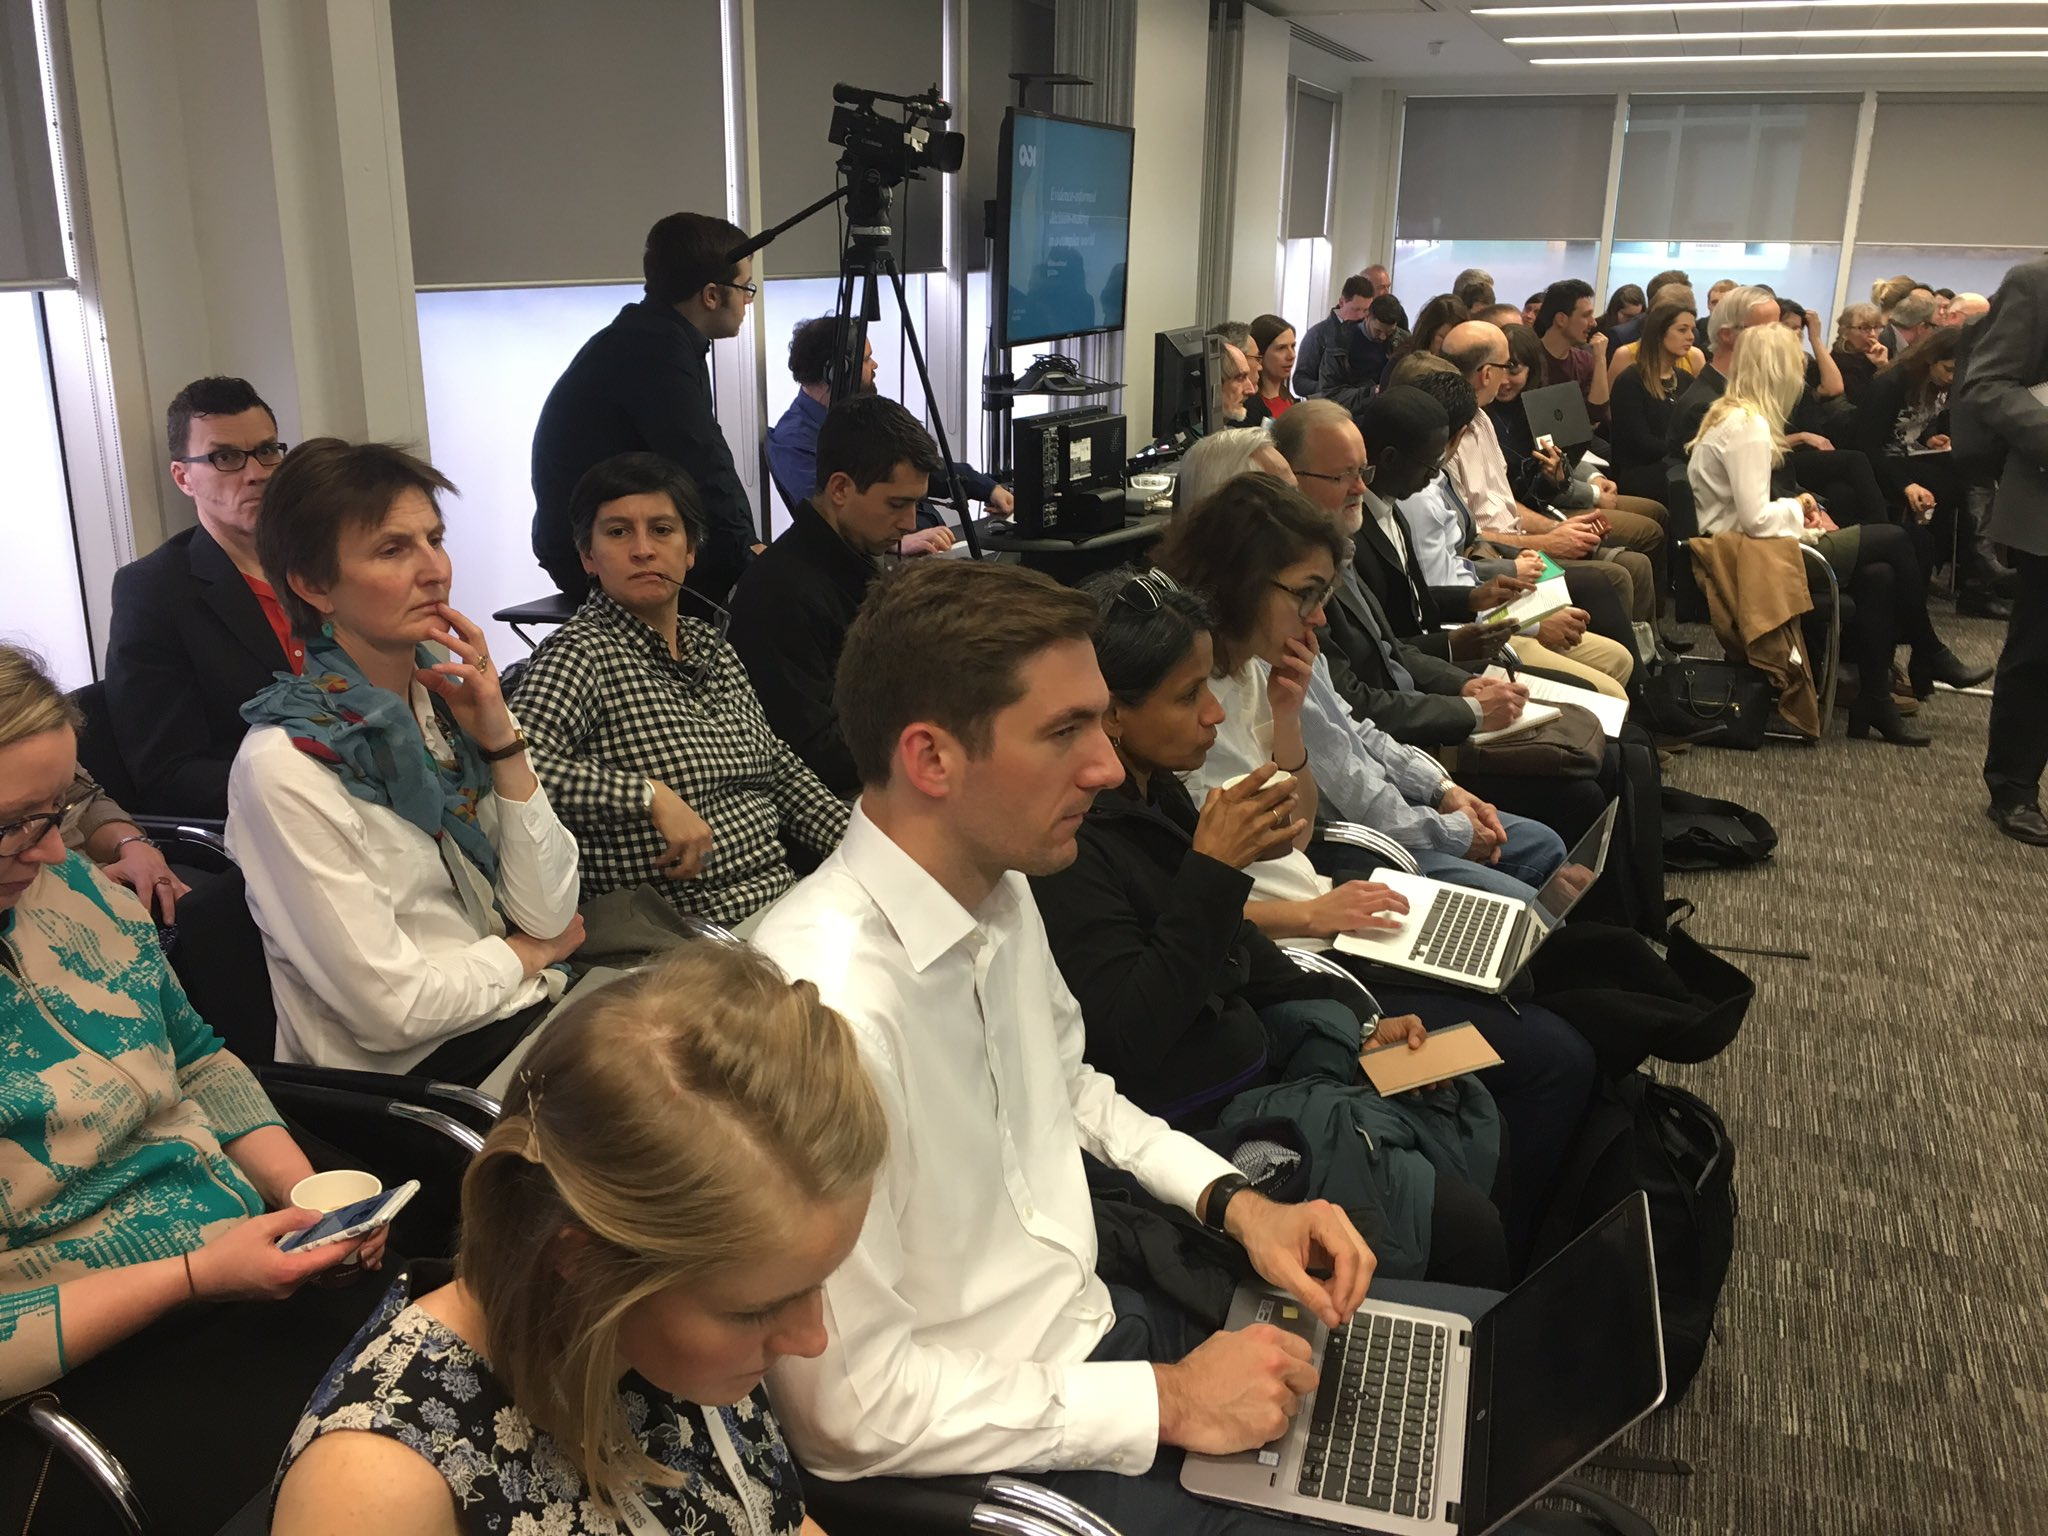 Full house for Evidence-informed decision-making in a complex world @rapid_odi @IIED #evidence4impact https://t.co/cxJbUnn4RB